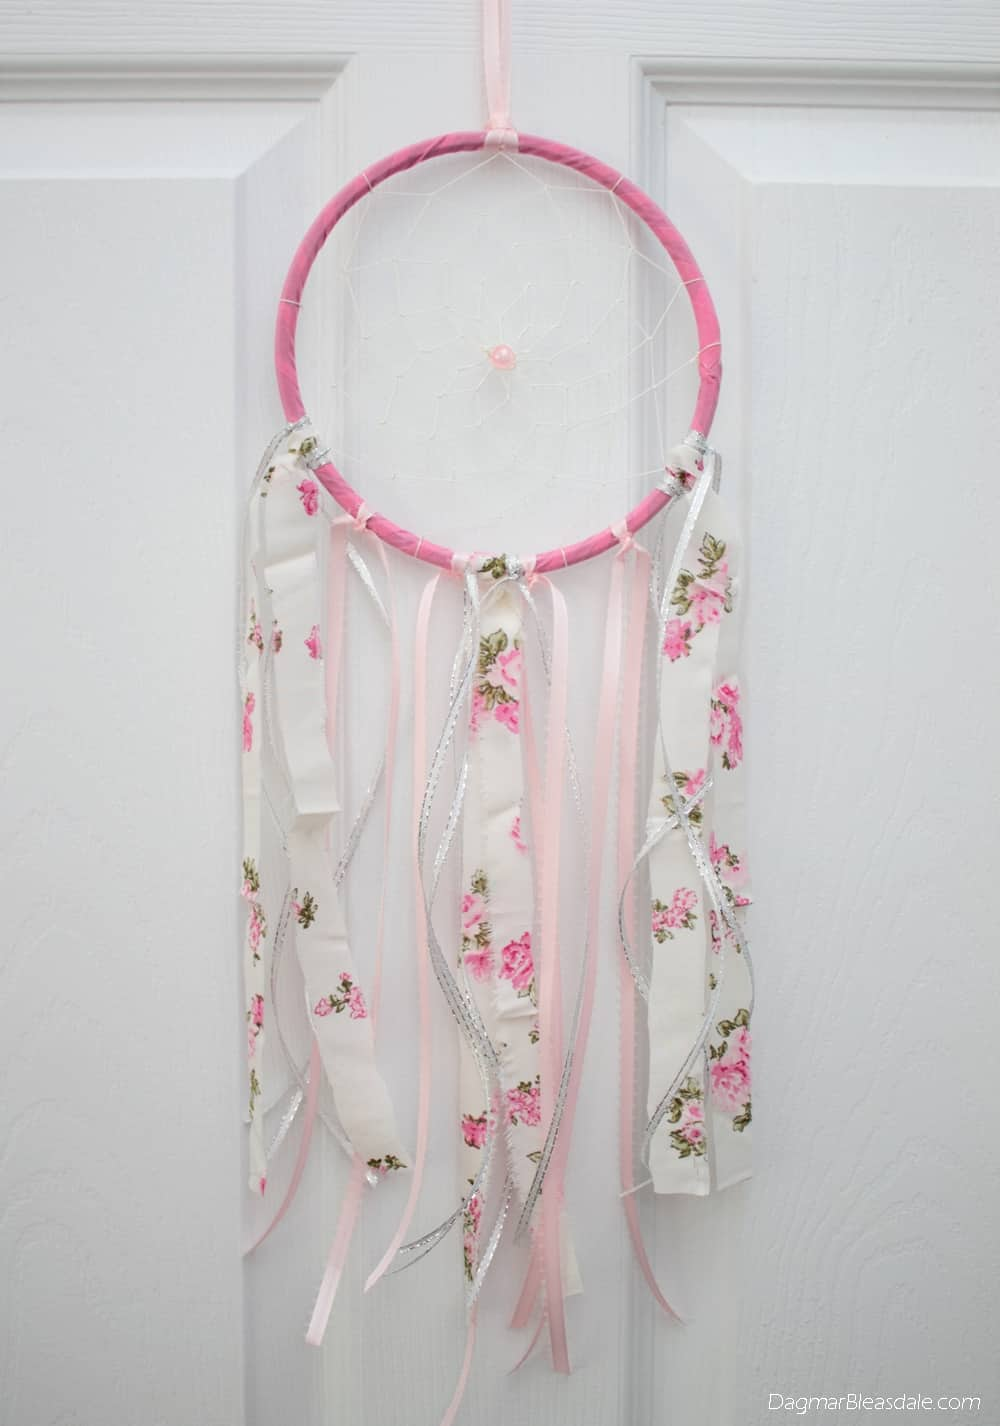 DIY dreamcatcher with lace, embroidry hoop, and ribbons,